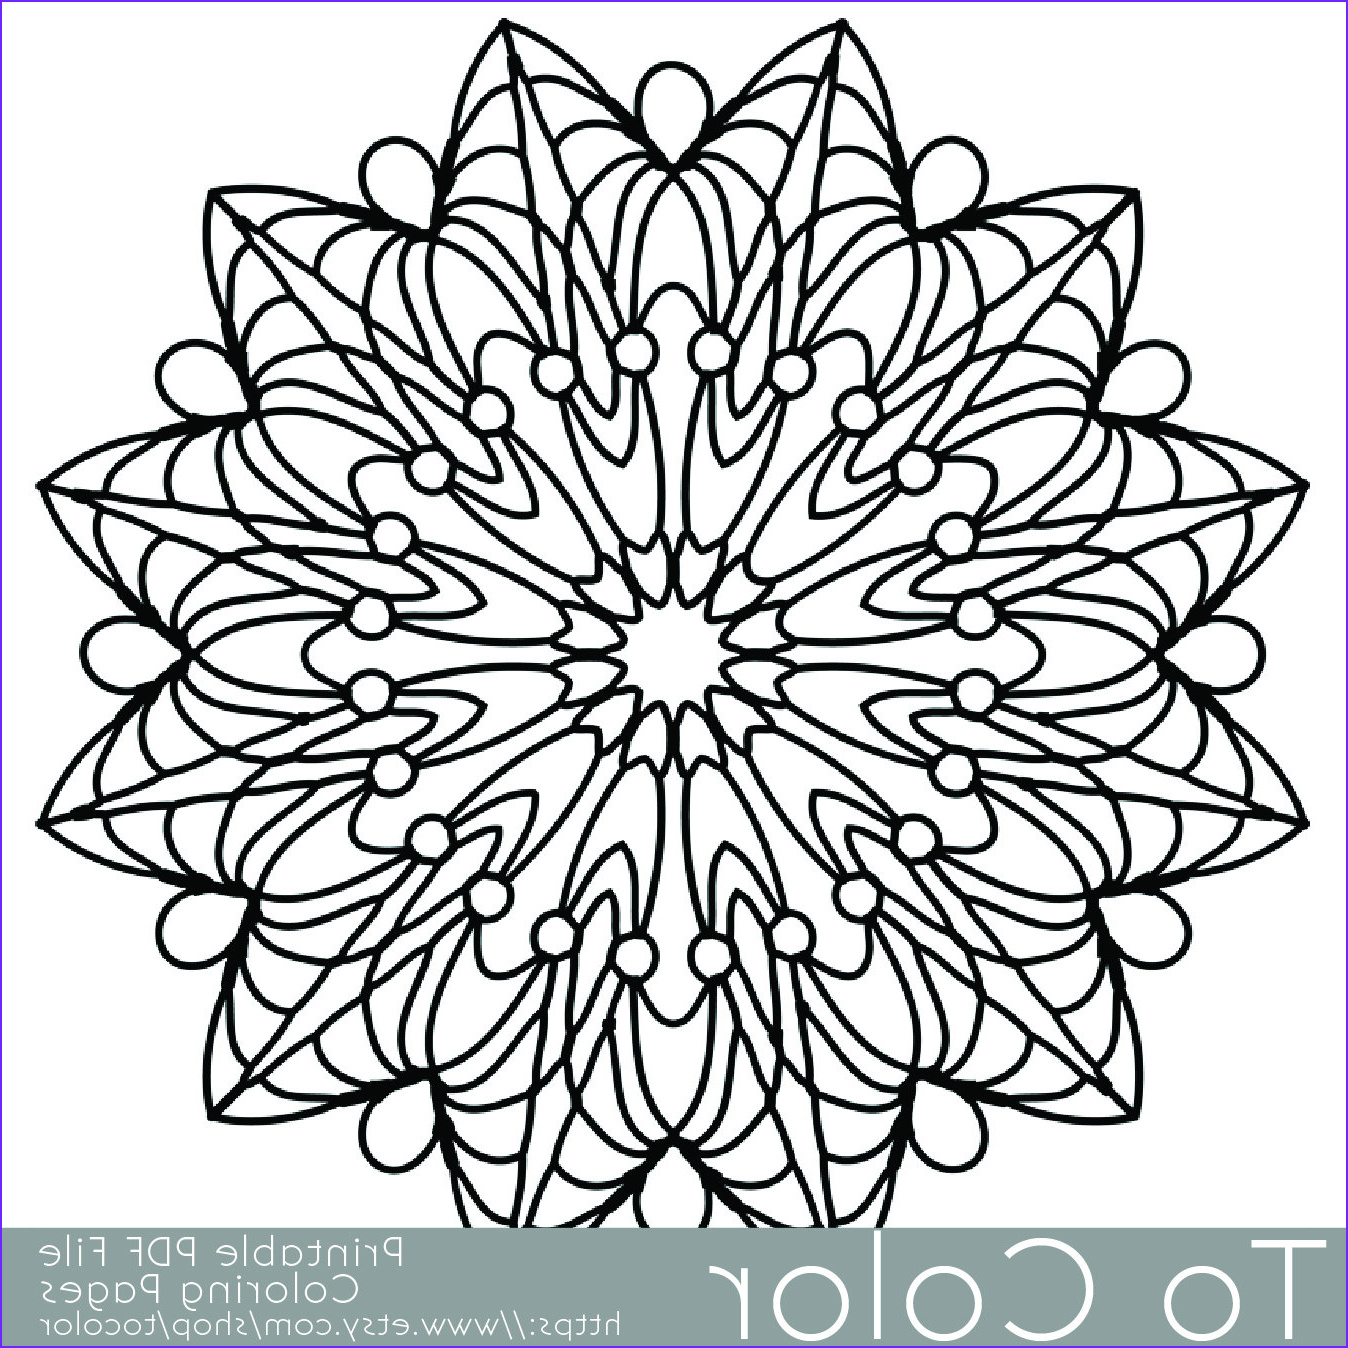 Adult Coloring Pages Easy New Gallery Simple Printable Coloring Pages for Adults Gel Pens Mandala